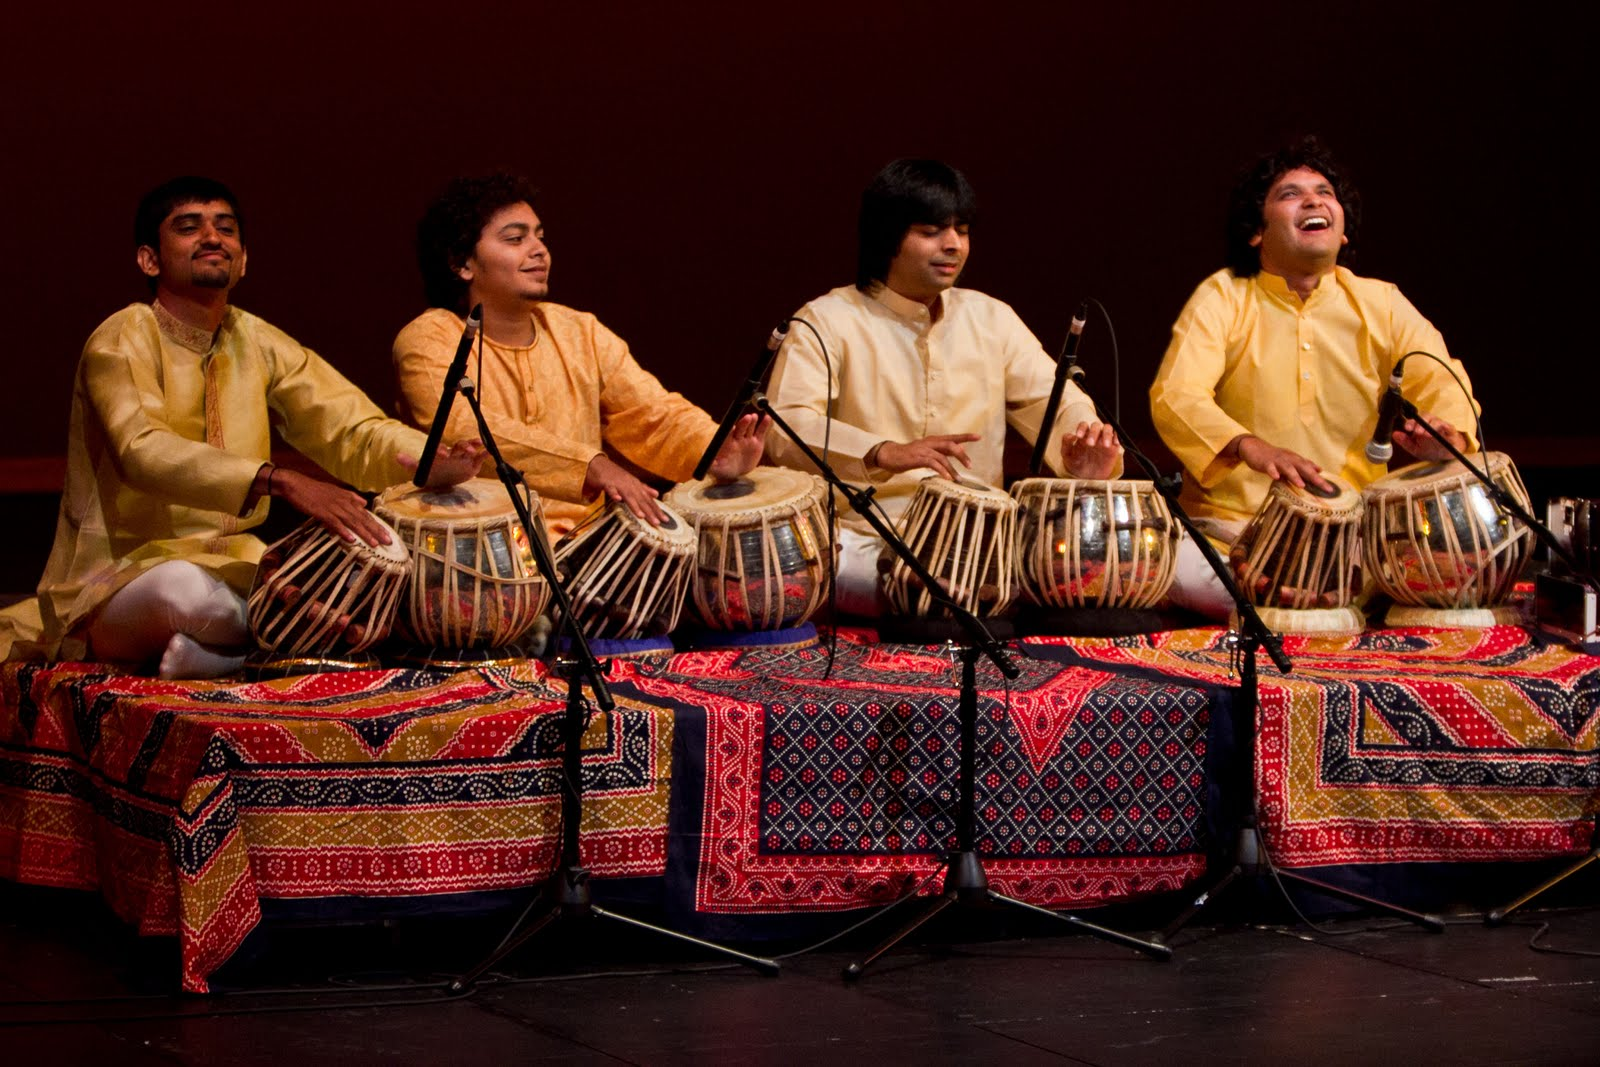 tabla indian culture music classical dance orchestra drum ensemble arts ethnomusicology sg chinese related live maven wikipedia development harmony april